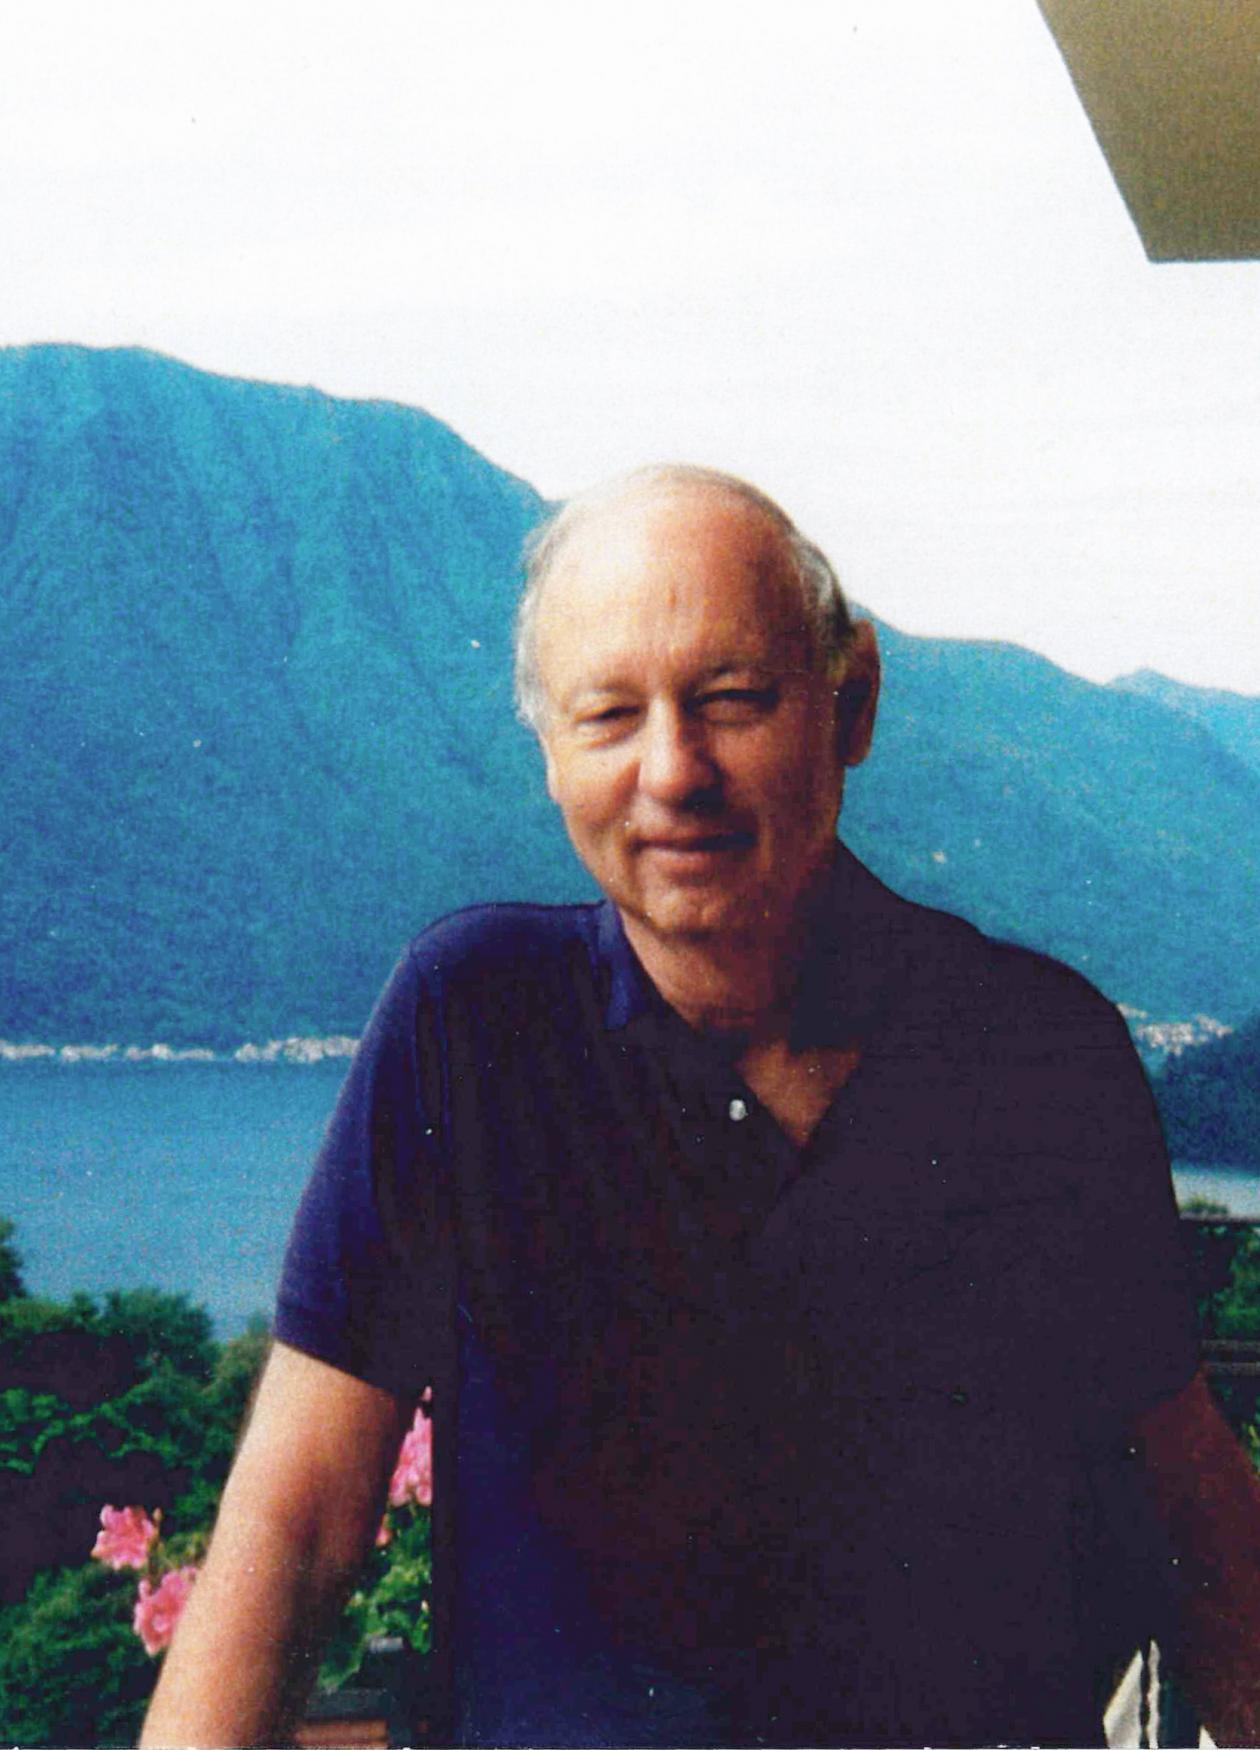 Color photo of Jules Witcover standing on the balcony of a house which overlooks a large bay and mountains in the background.